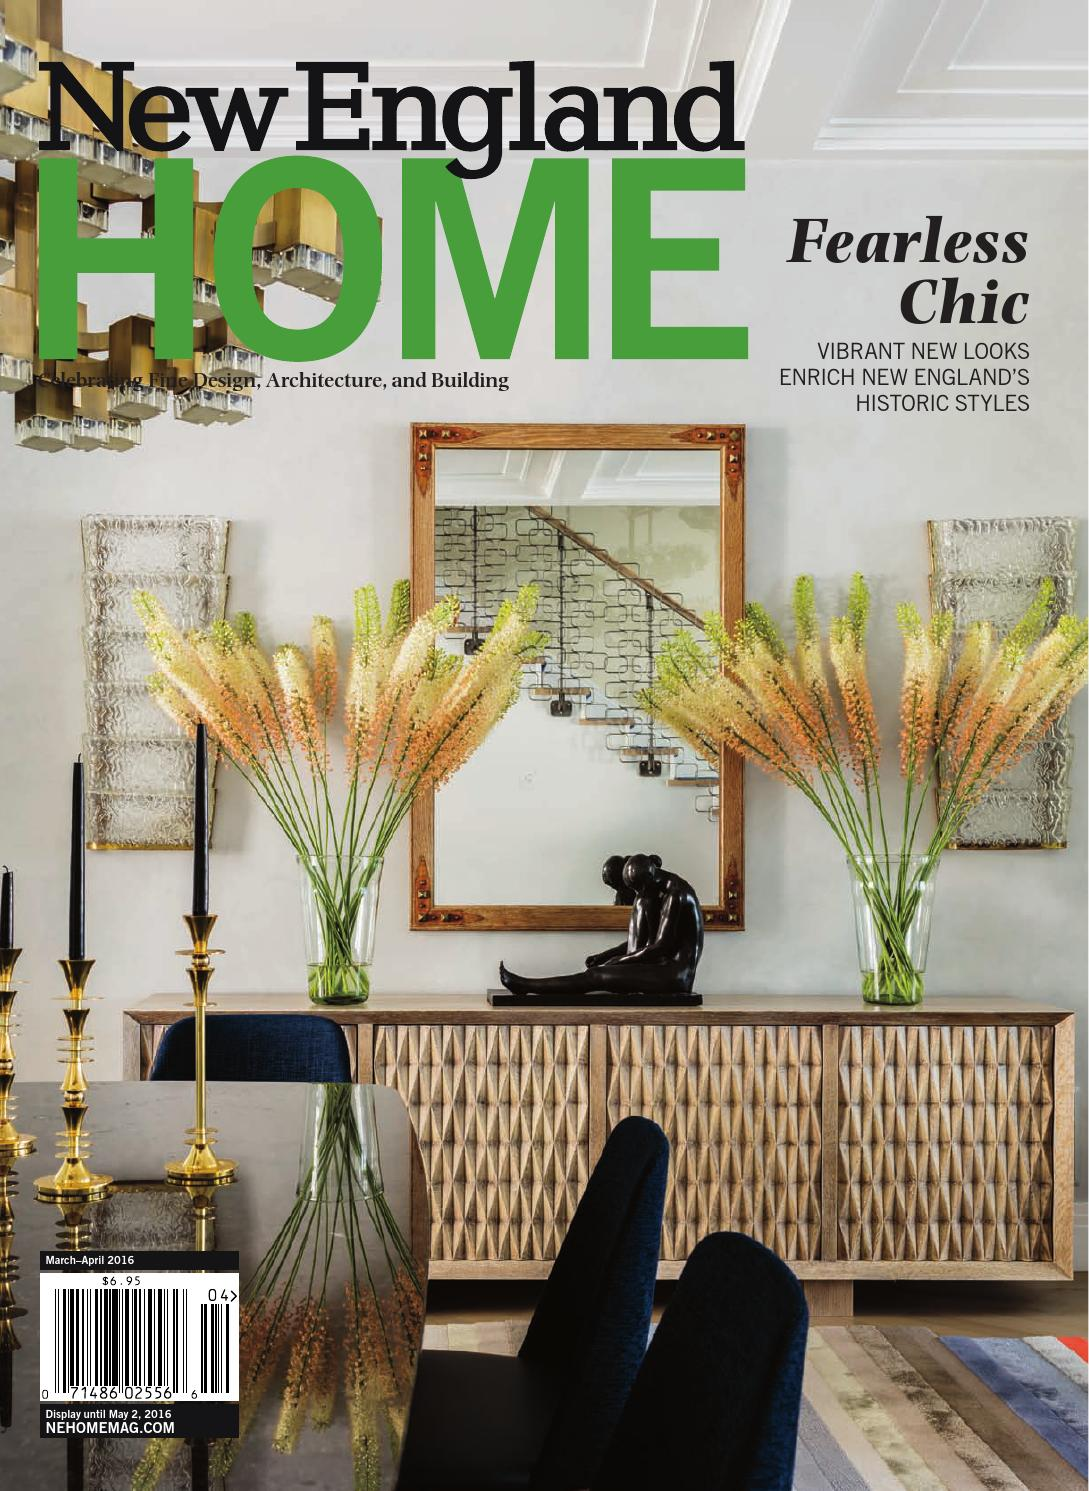 new england home march april 2016 by new england home magazine new england home march april 2016 by new england home magazine llc issuu